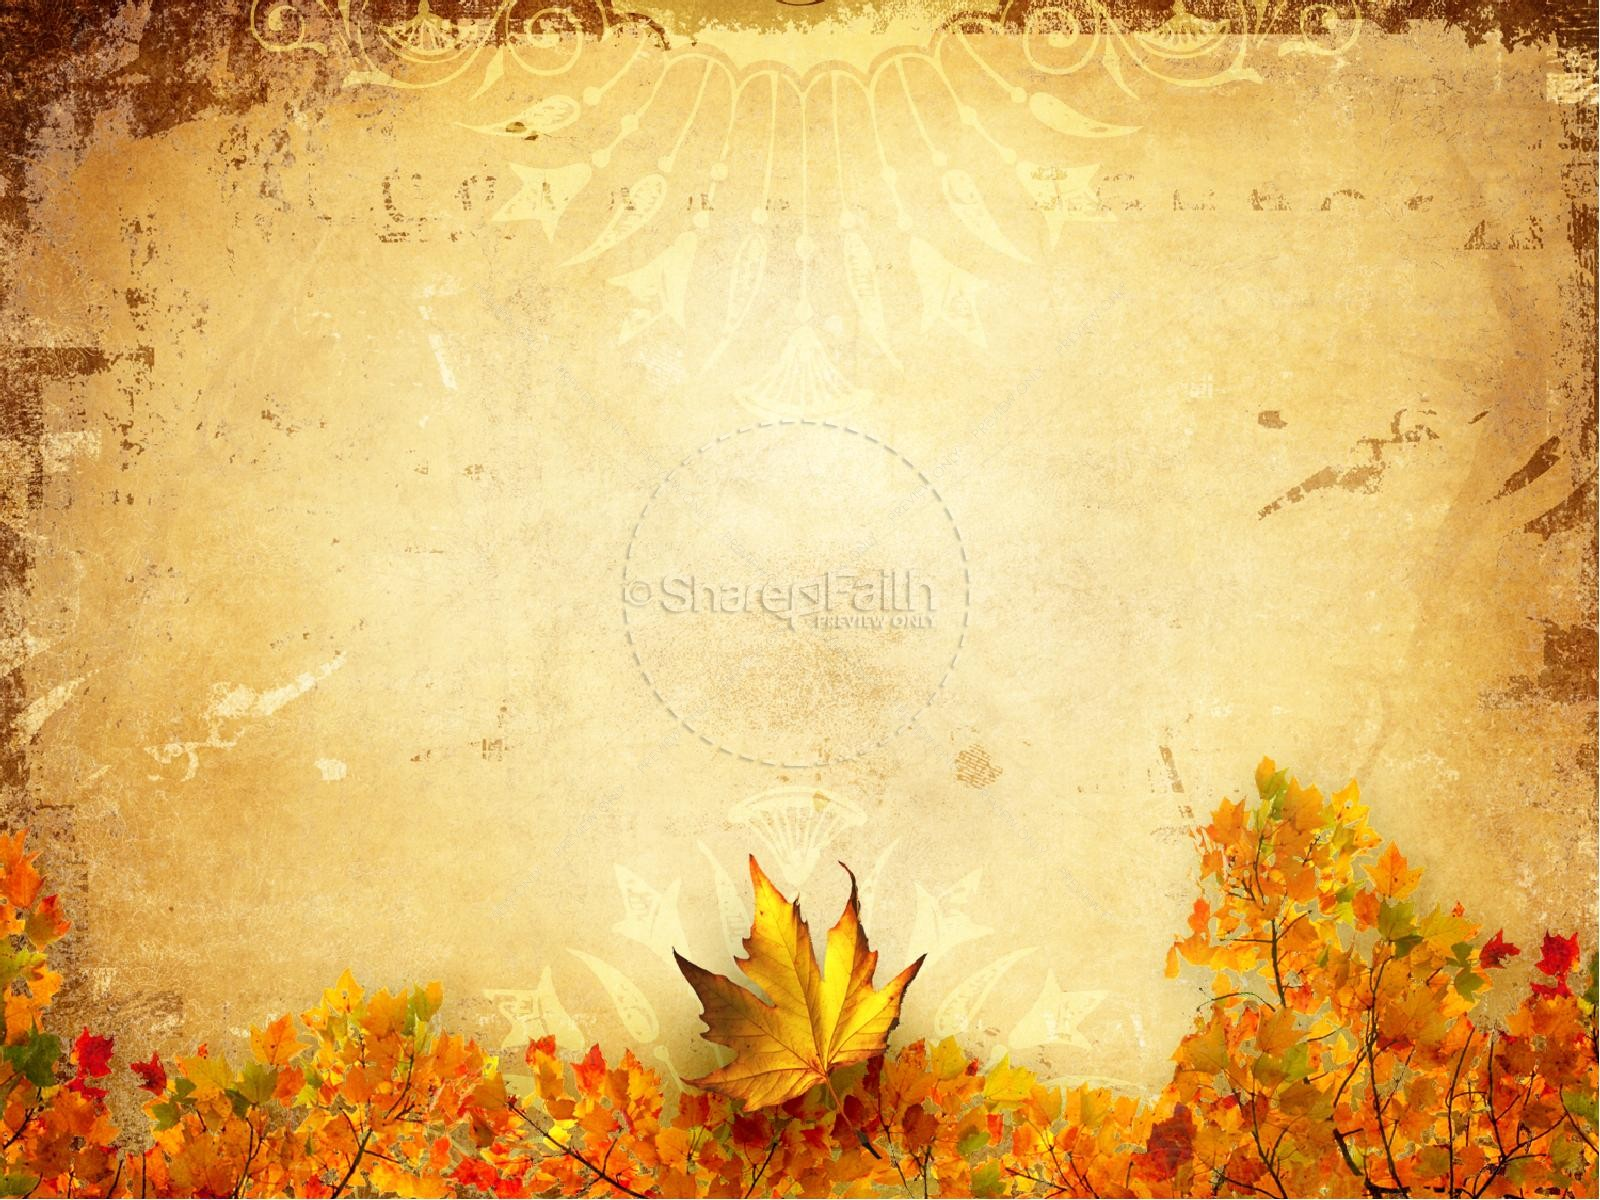 Fall church graphics powerpoint fall thanksgiving powerpoints fall church graphics powerpoint toneelgroepblik Choice Image